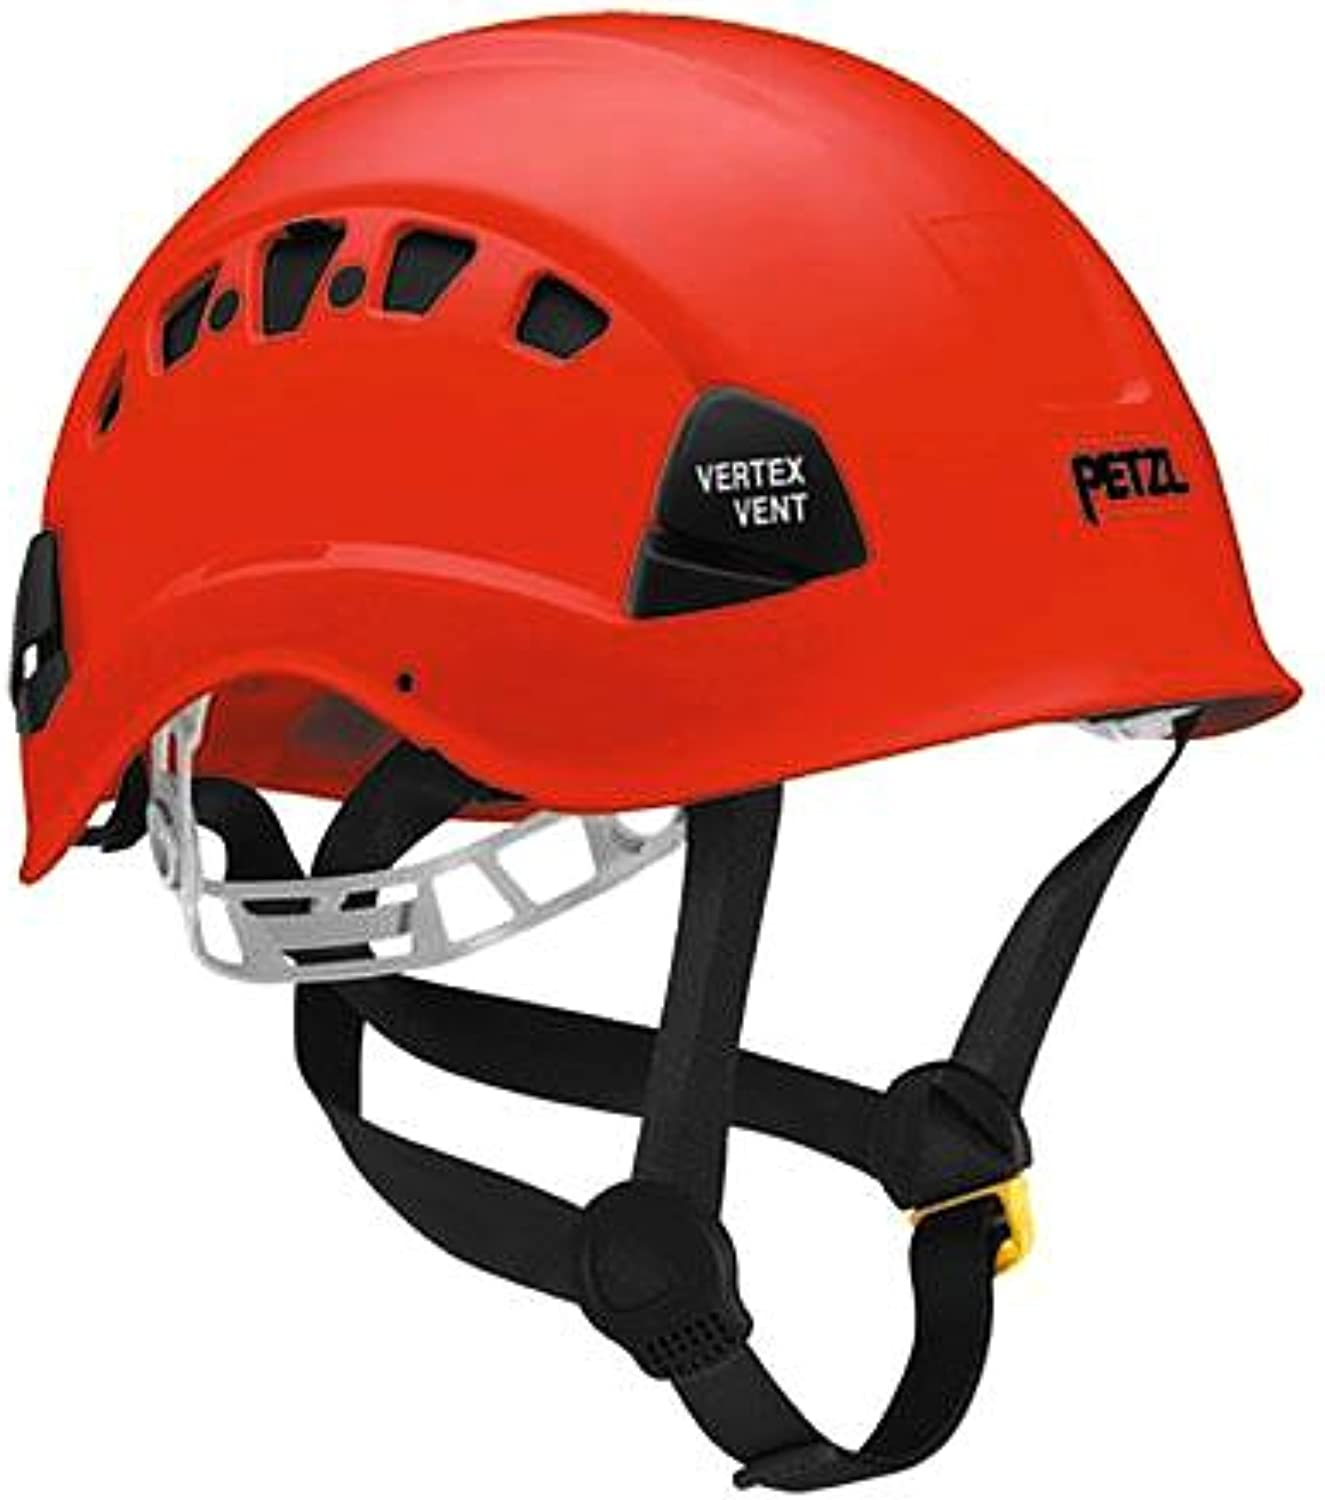 Petzl greenEX VENT ANSI helmet Red A10VRA with a FREE drawstring storage bag